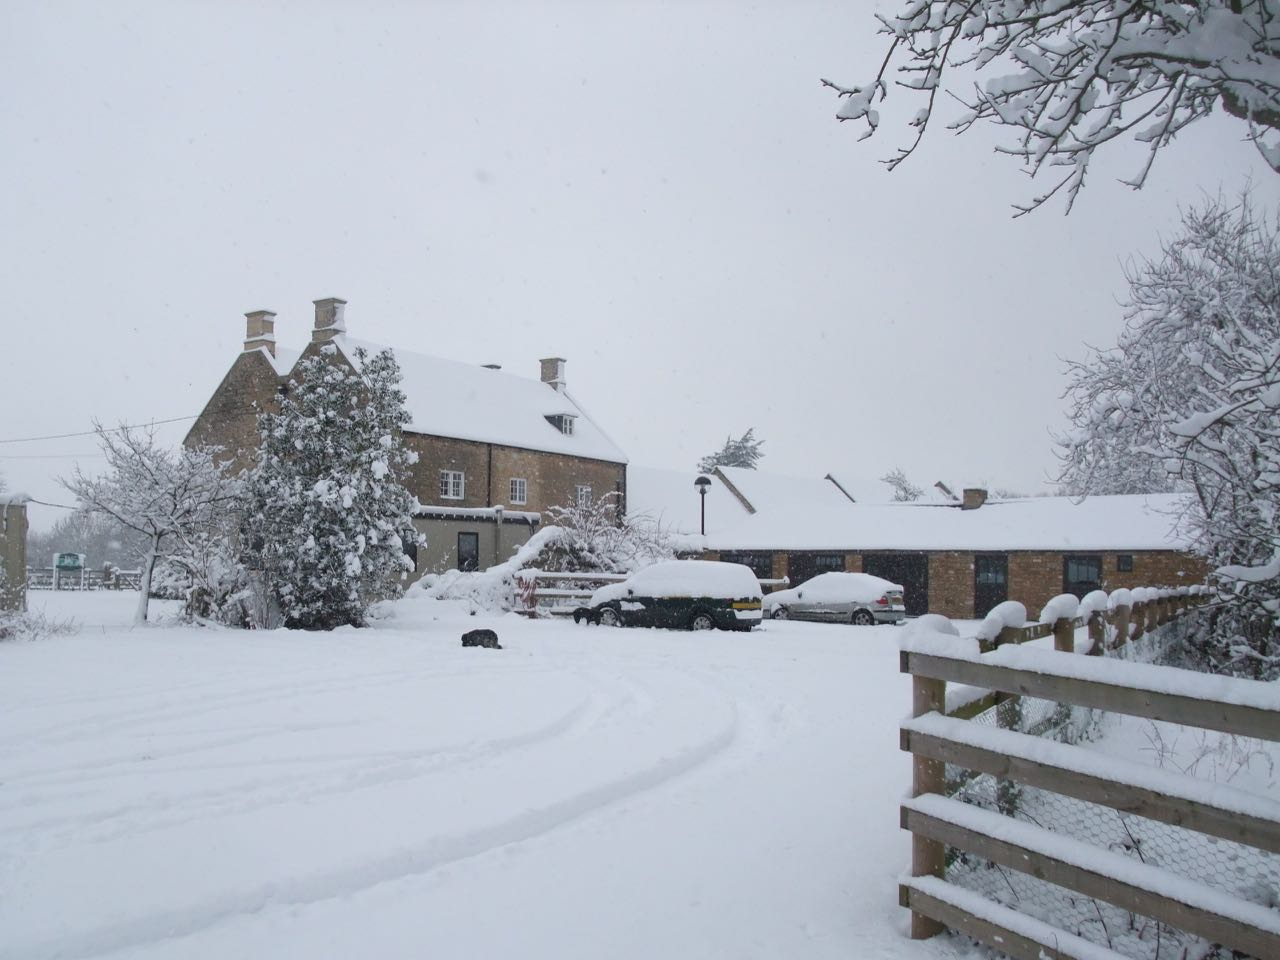 Top Lodge in the snow